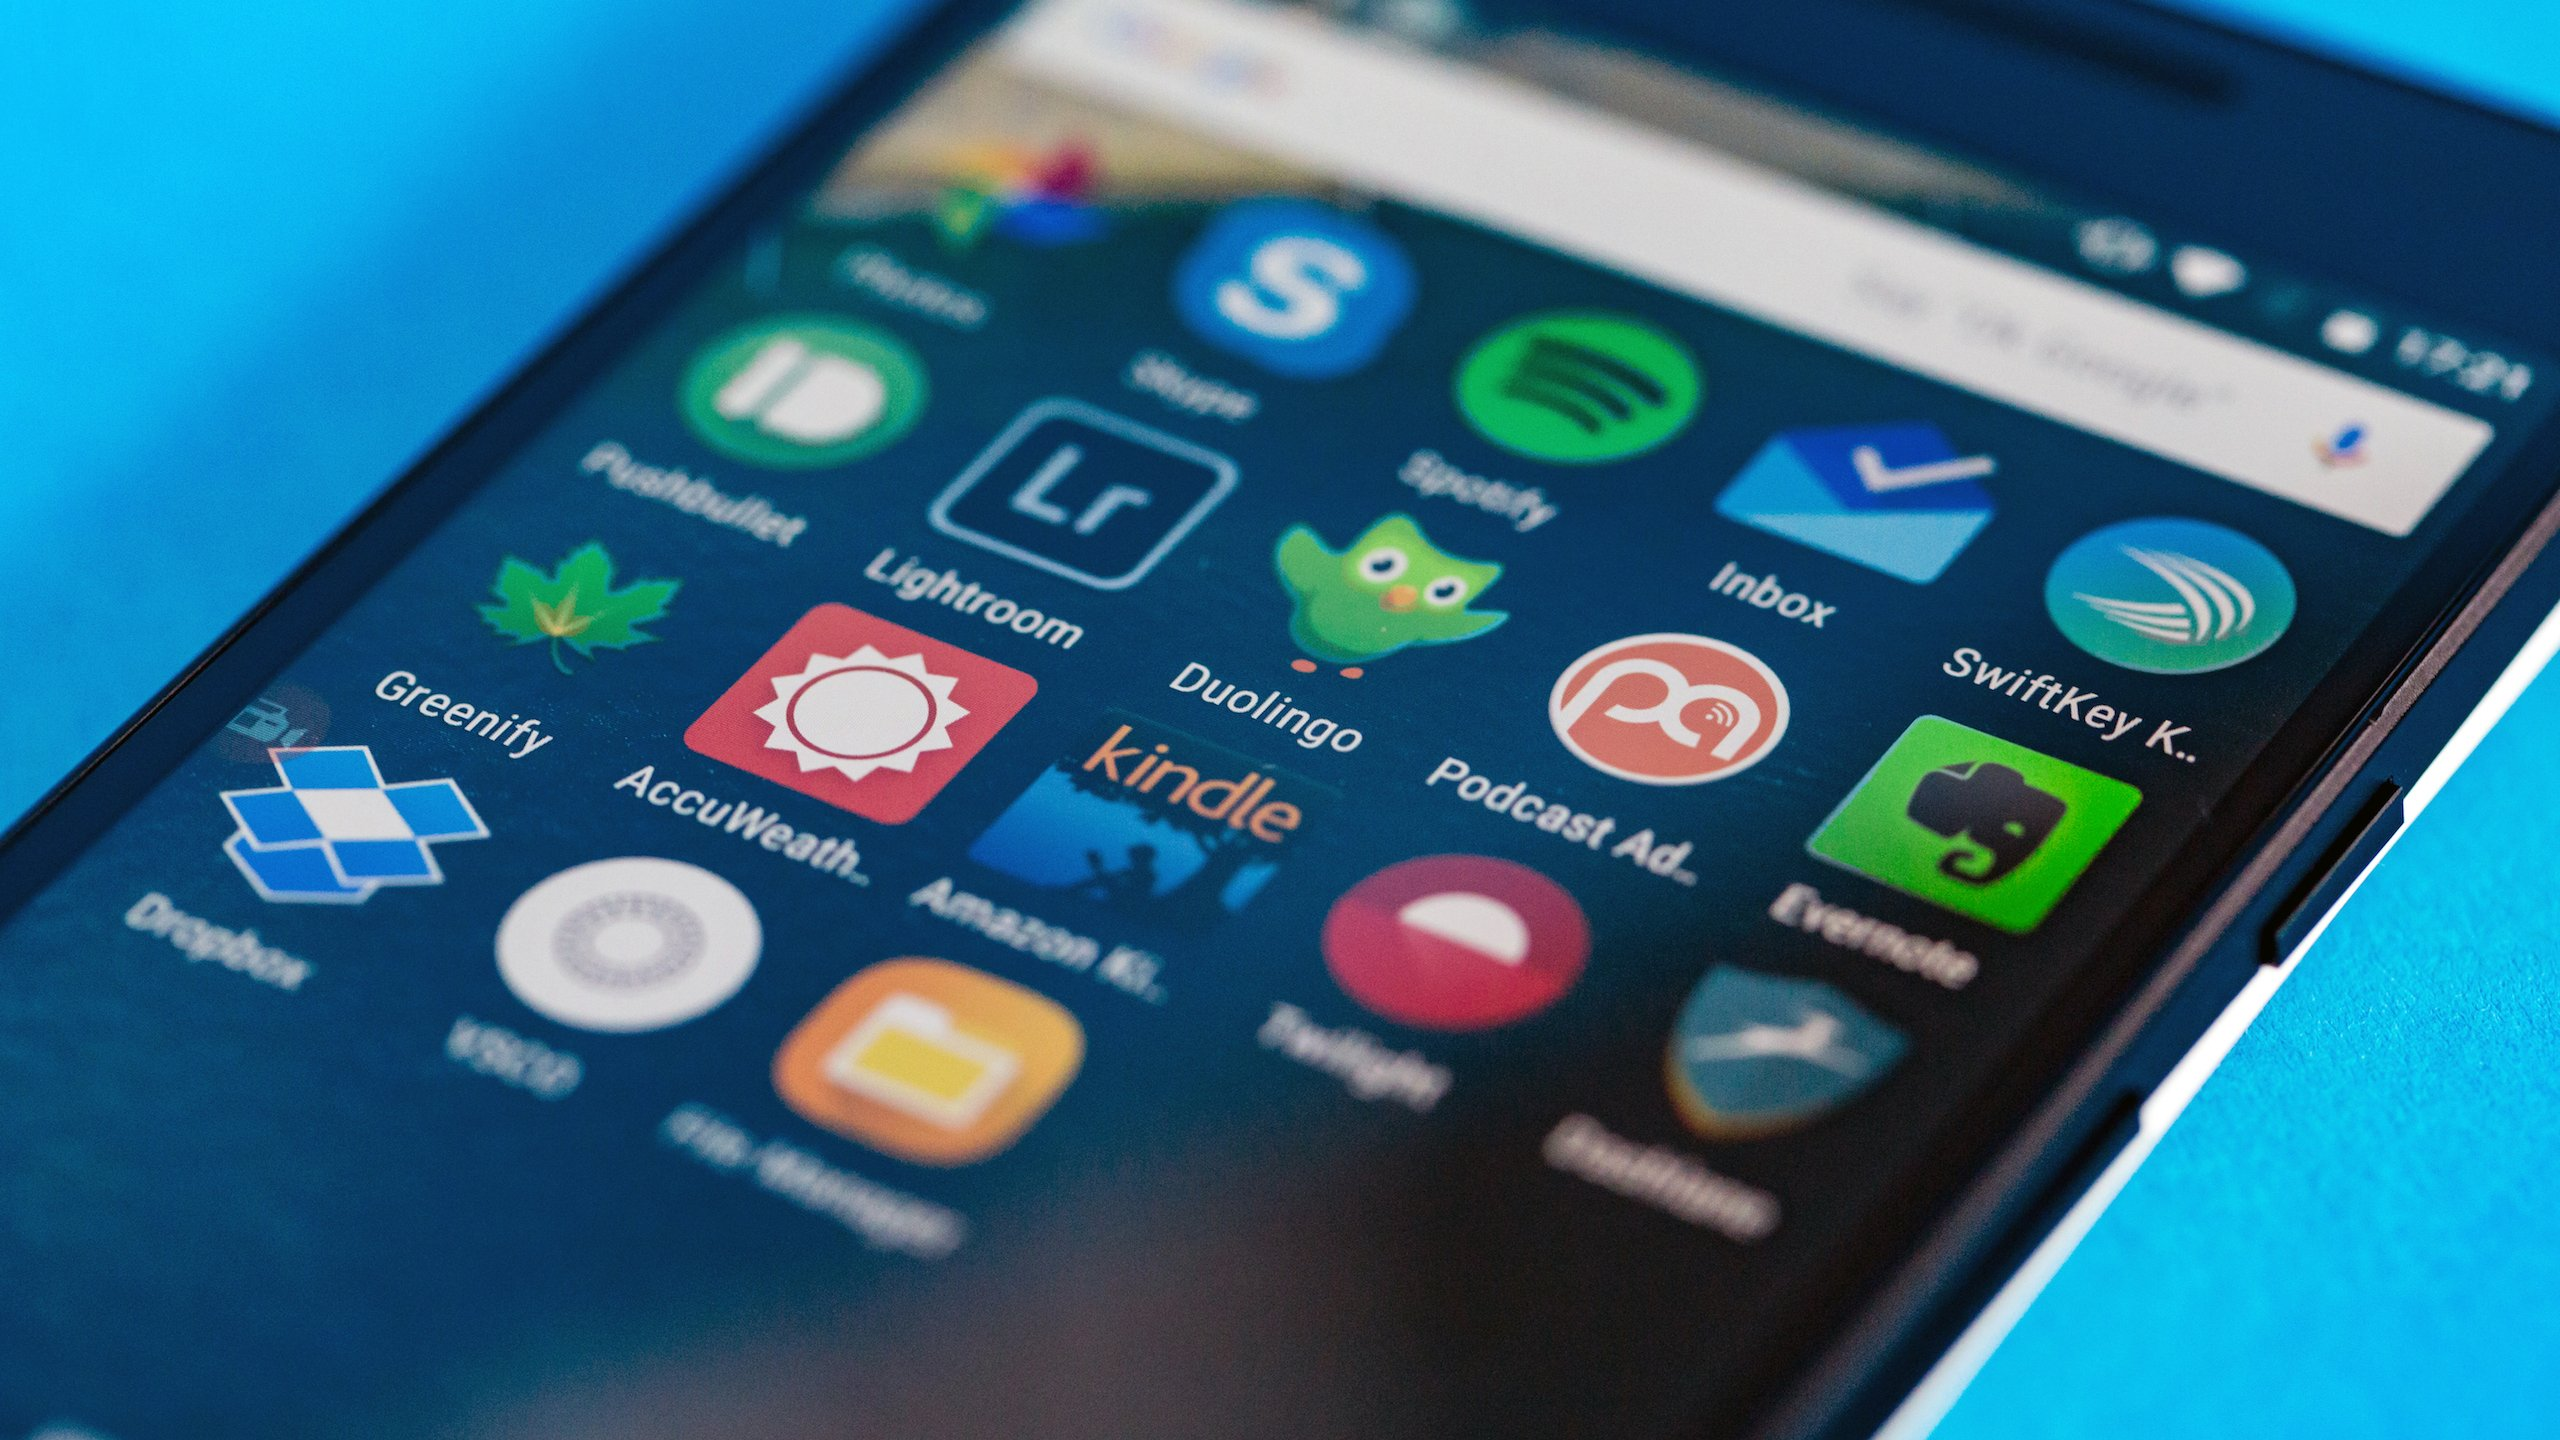 My Favorite Android Apps 2021